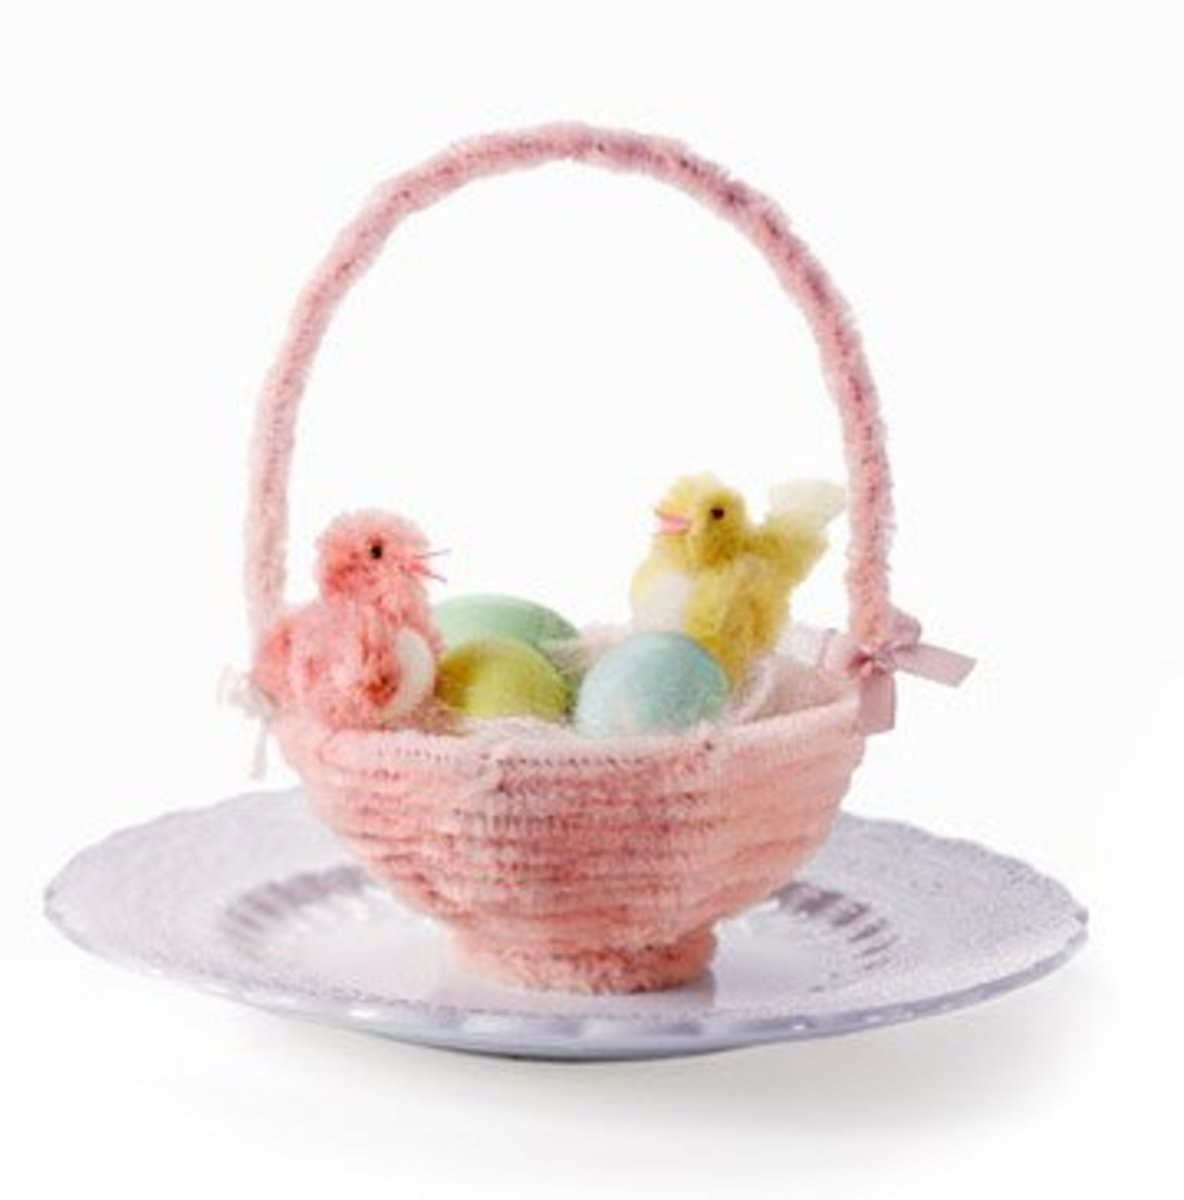 kid-boy-girl-easter-basket-ideas-unique-homemade-creative-crafts